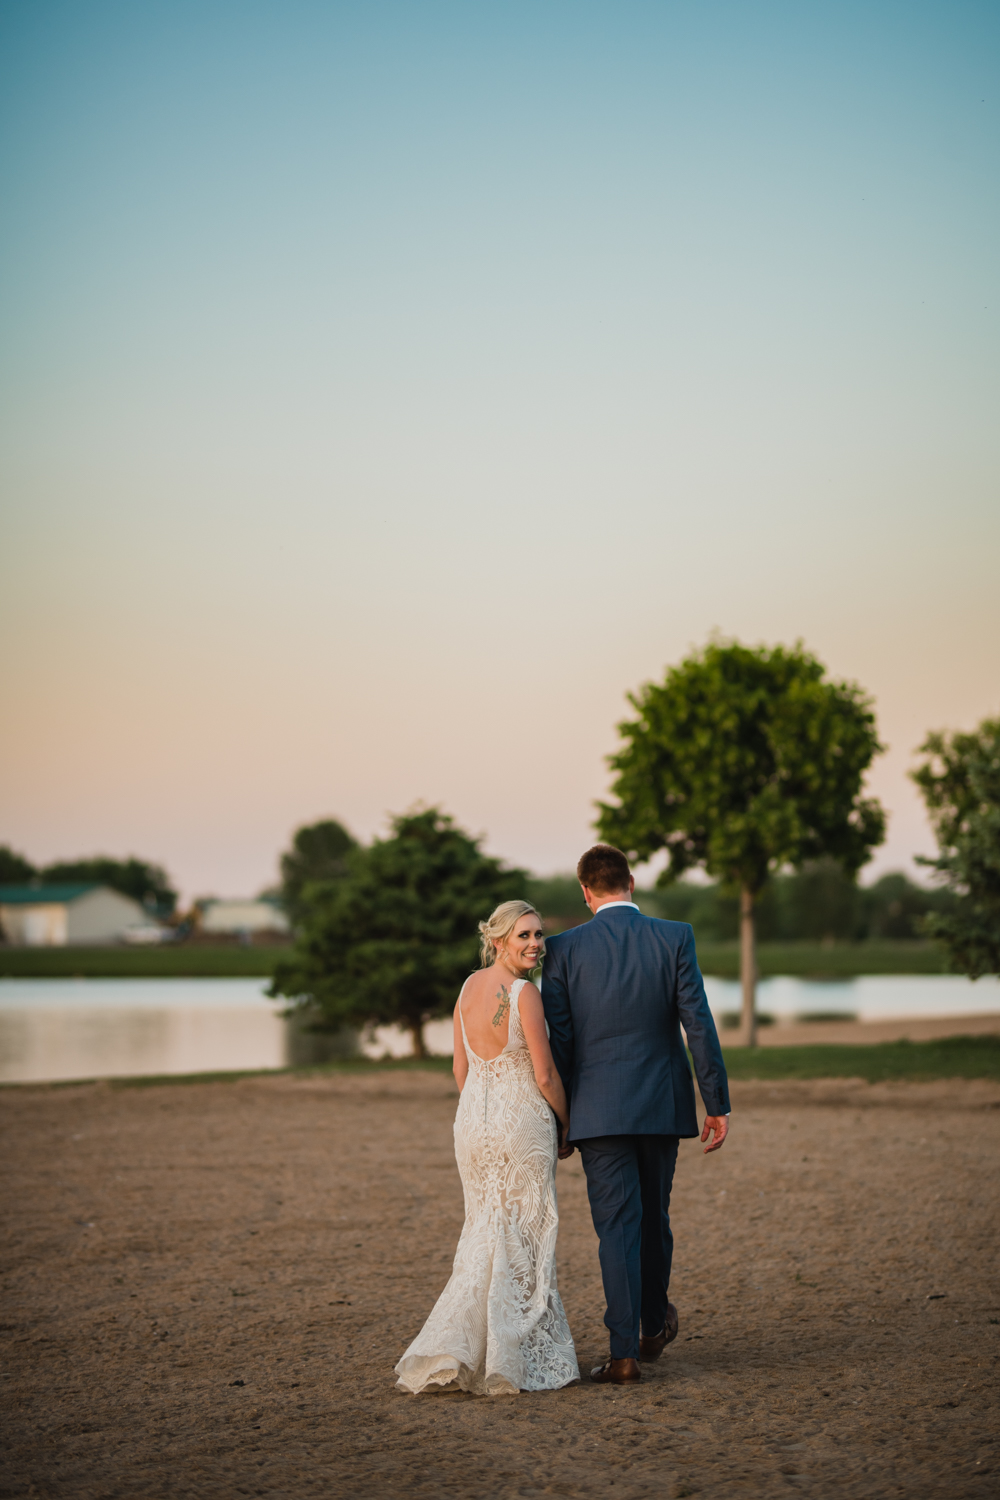 PHOCO Photography Dani Sam Wedding Island Pelican Lakes Colorado-15.jpg